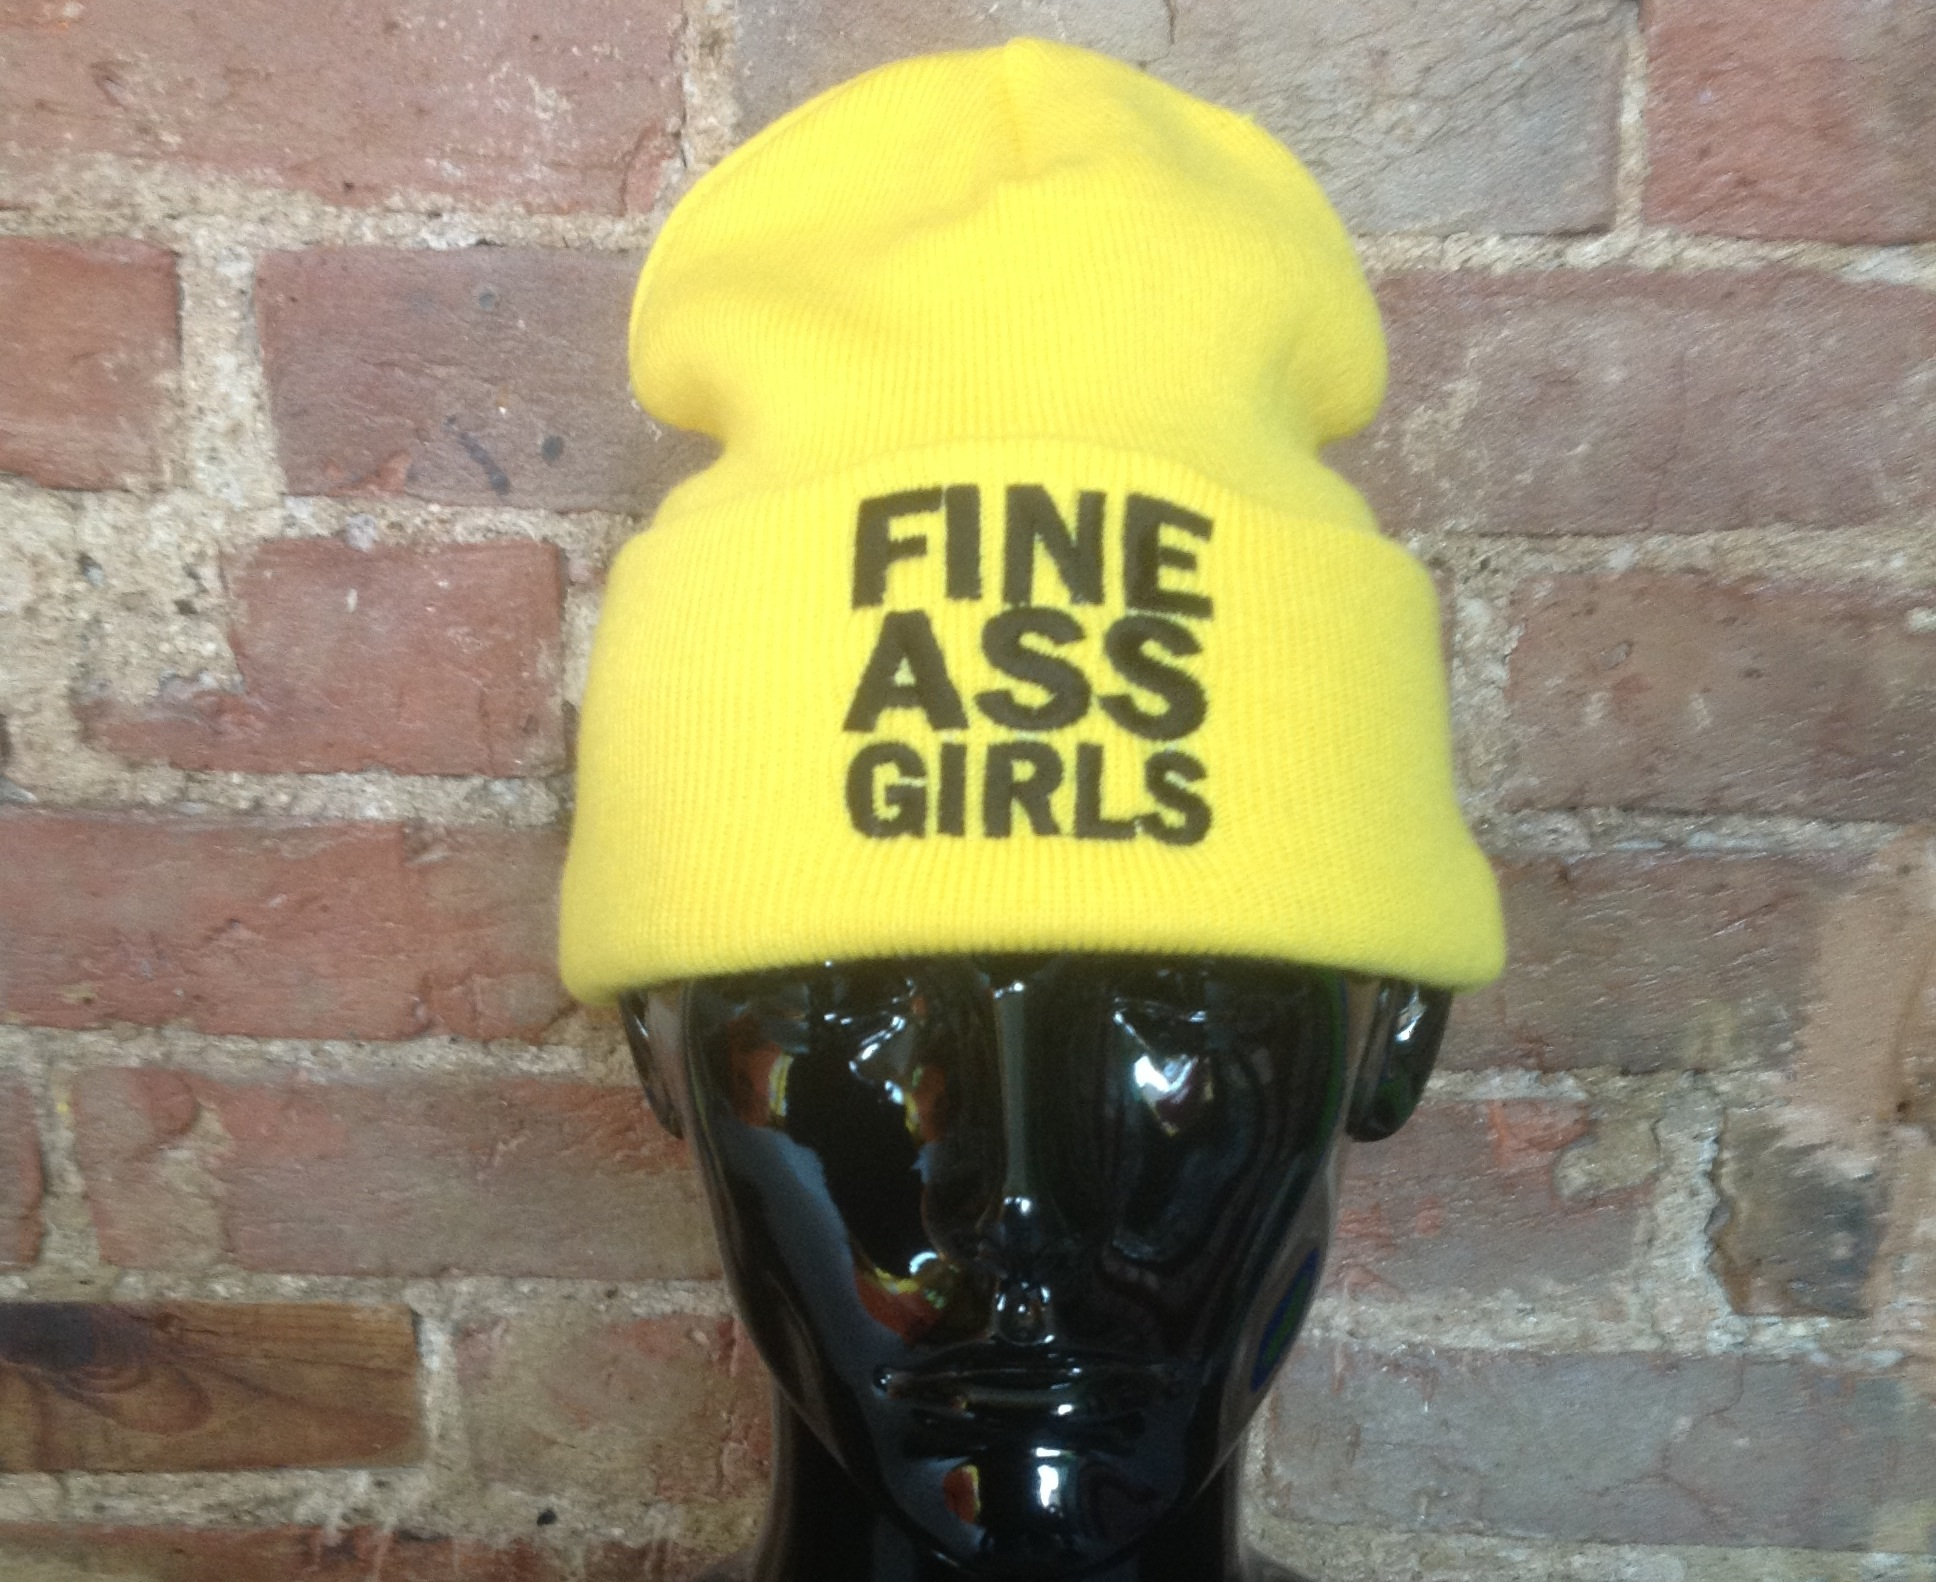 FINE ASS GIRLS beanie hat from TheTshirtShop on Storenvy